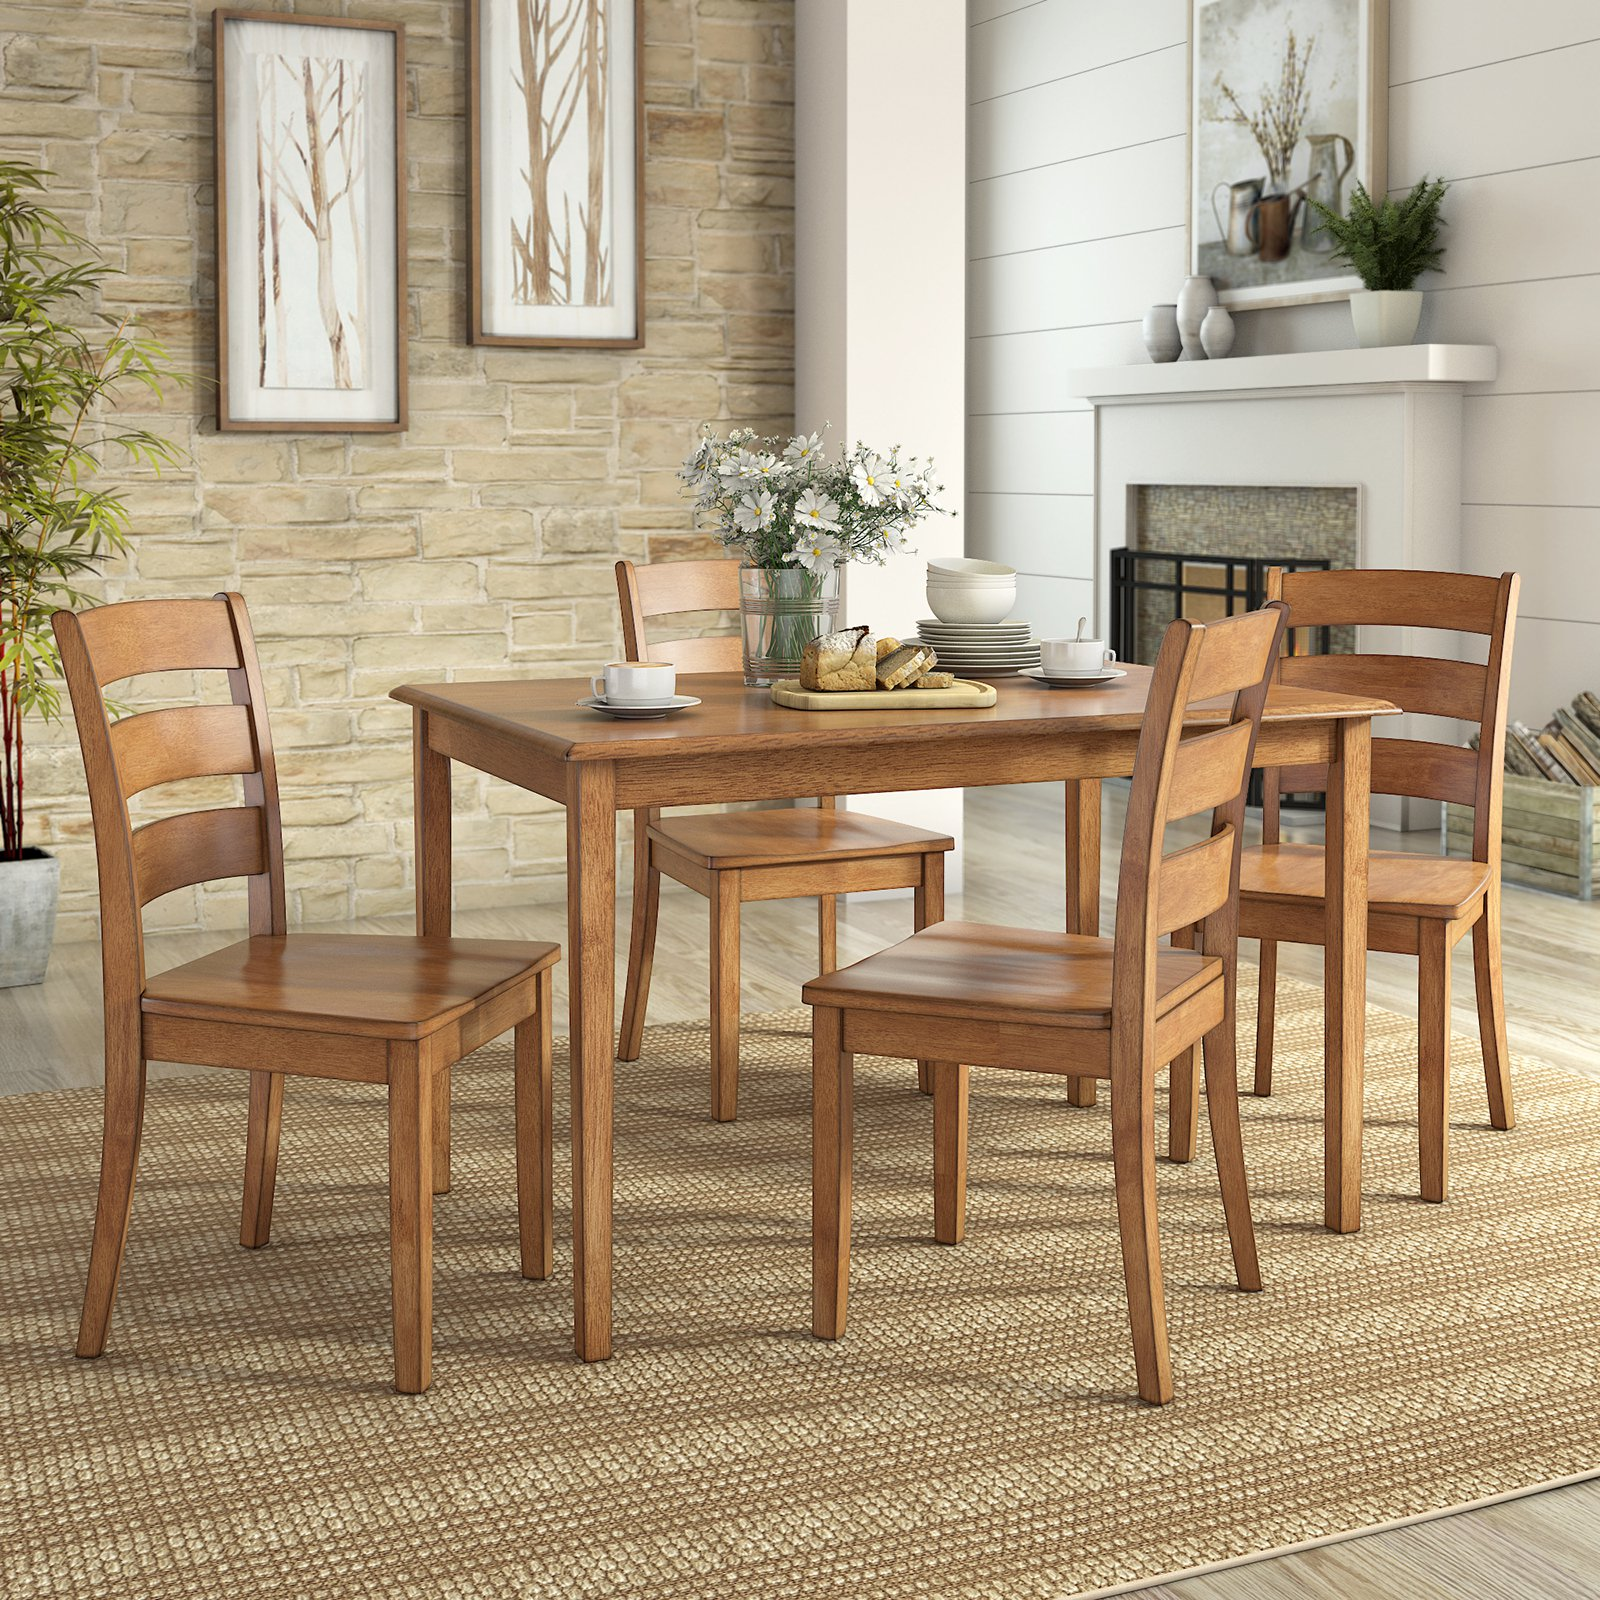 Weston Home Lexington 5 Piece Dining Set With 4 Ladder Back Chairs